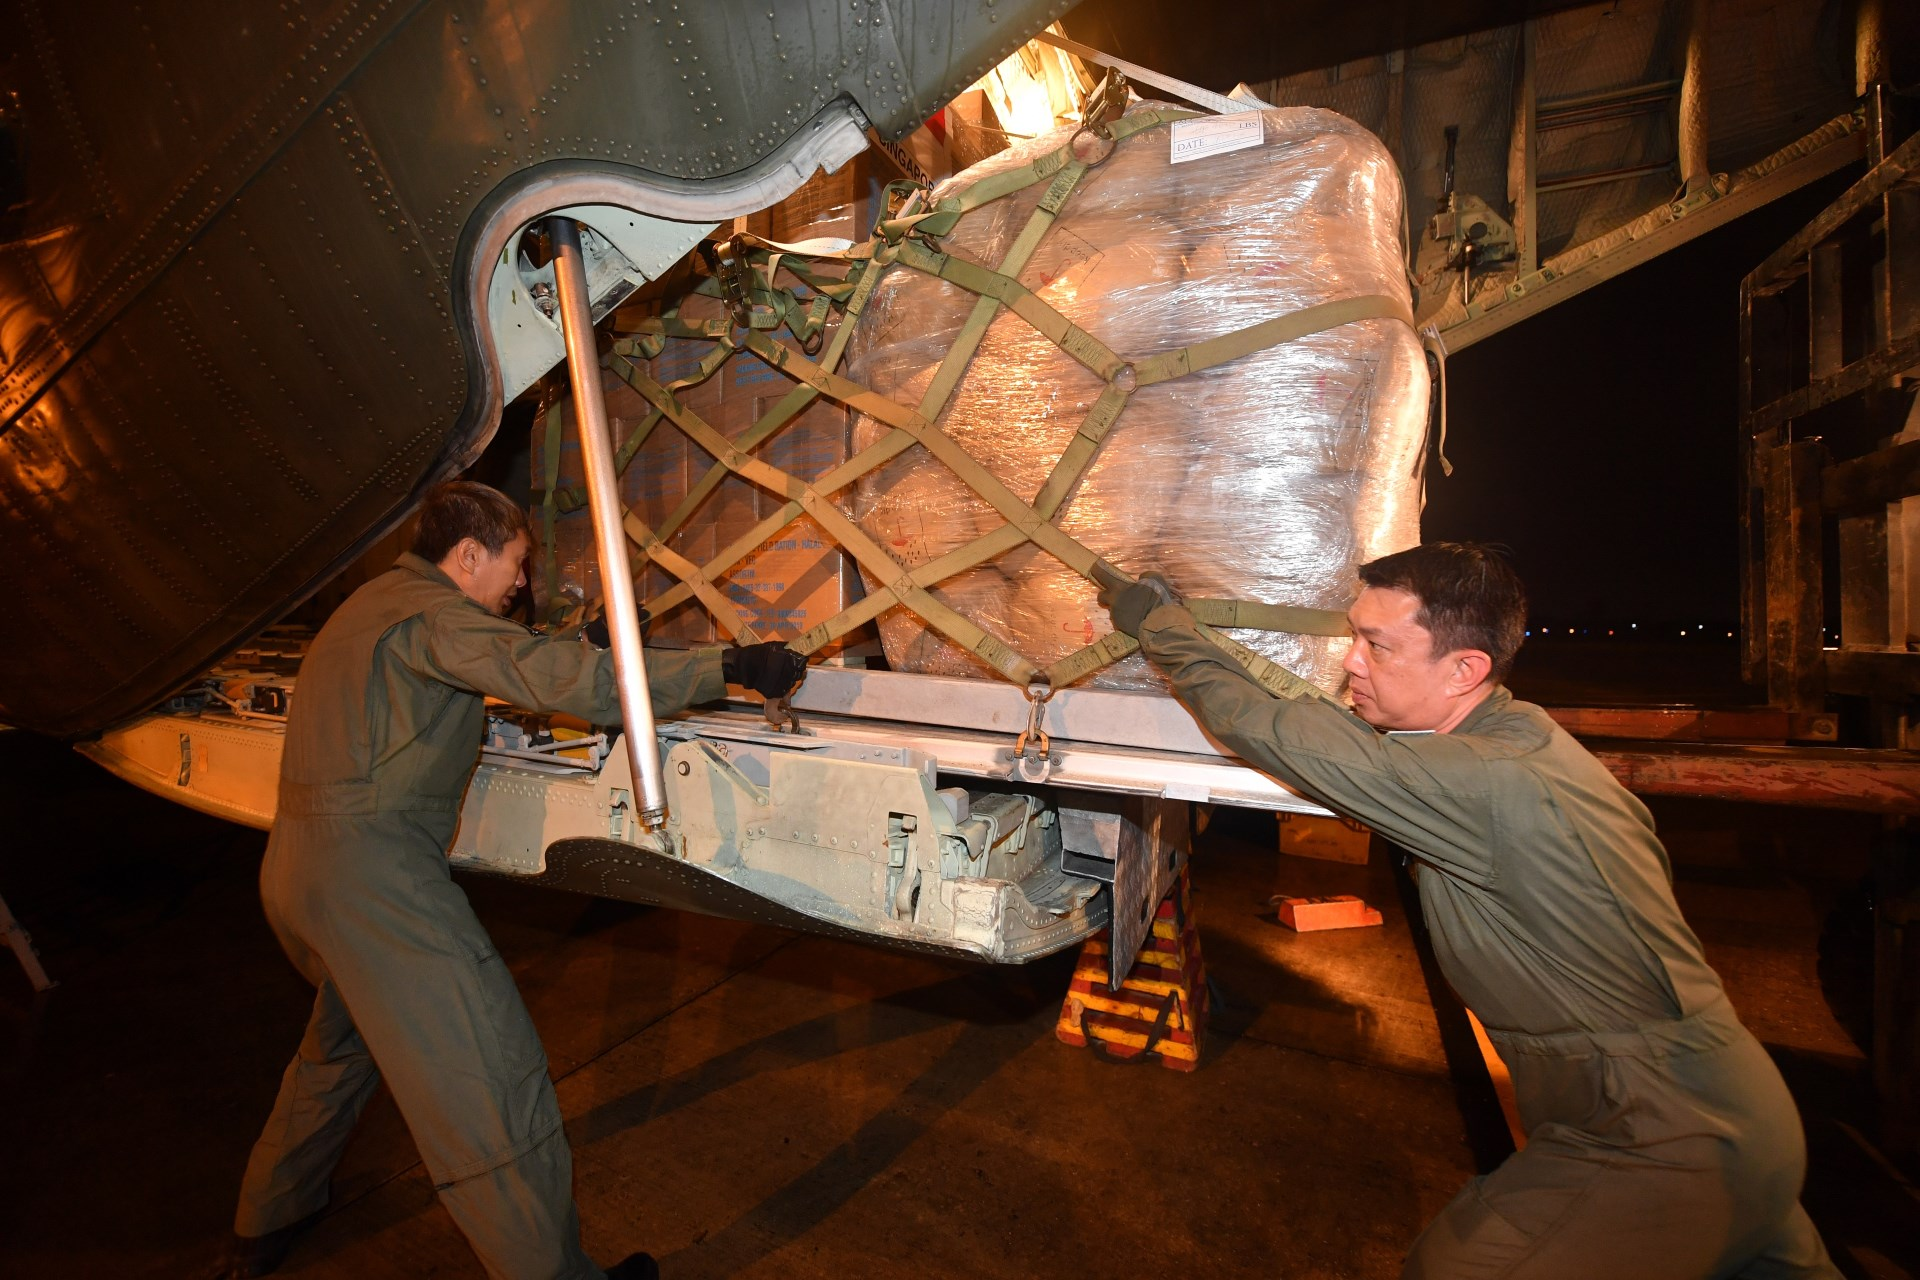 Republic of Singapore Air Force (RSAF) personnel unloading the humanitarian supplies in Vientiane, Laos.